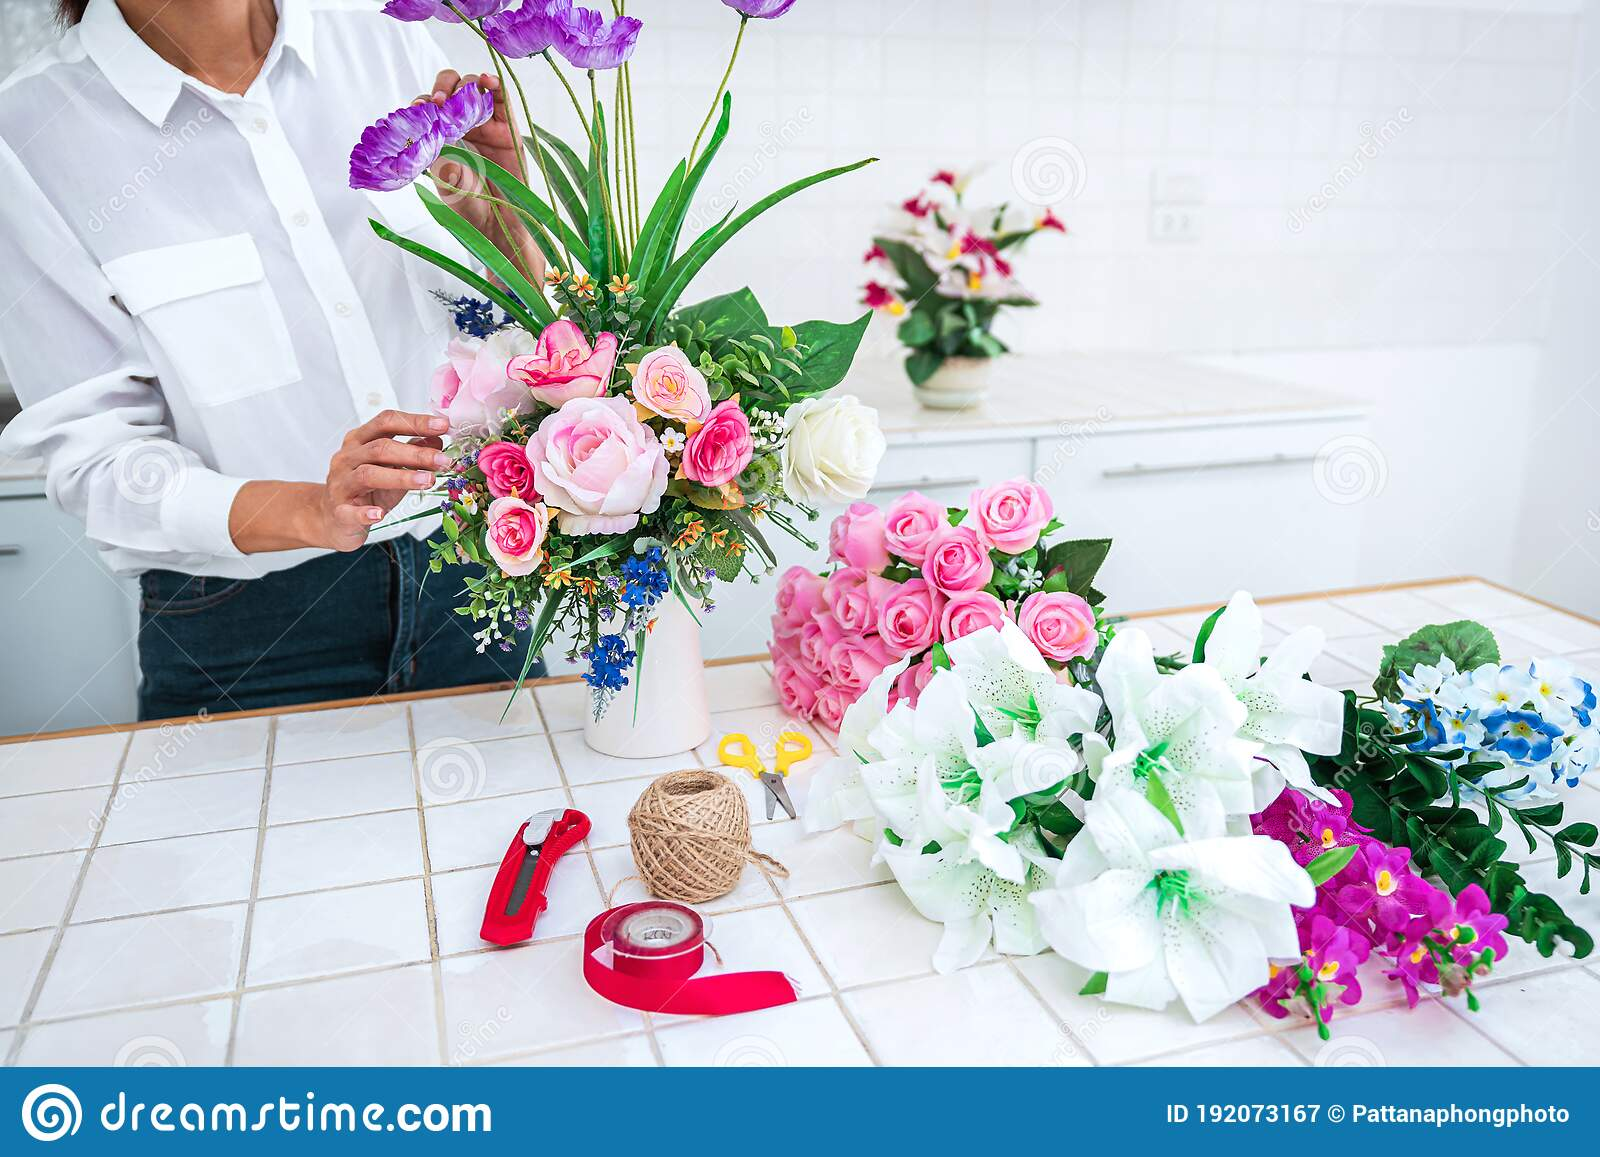 Arranging Artificial Flowers Decoration At Home Young Woman Florist Work Making Organizing Diy Artificial Flower Craft And Hand Stock Image Image Of Artificial Hand 192073167